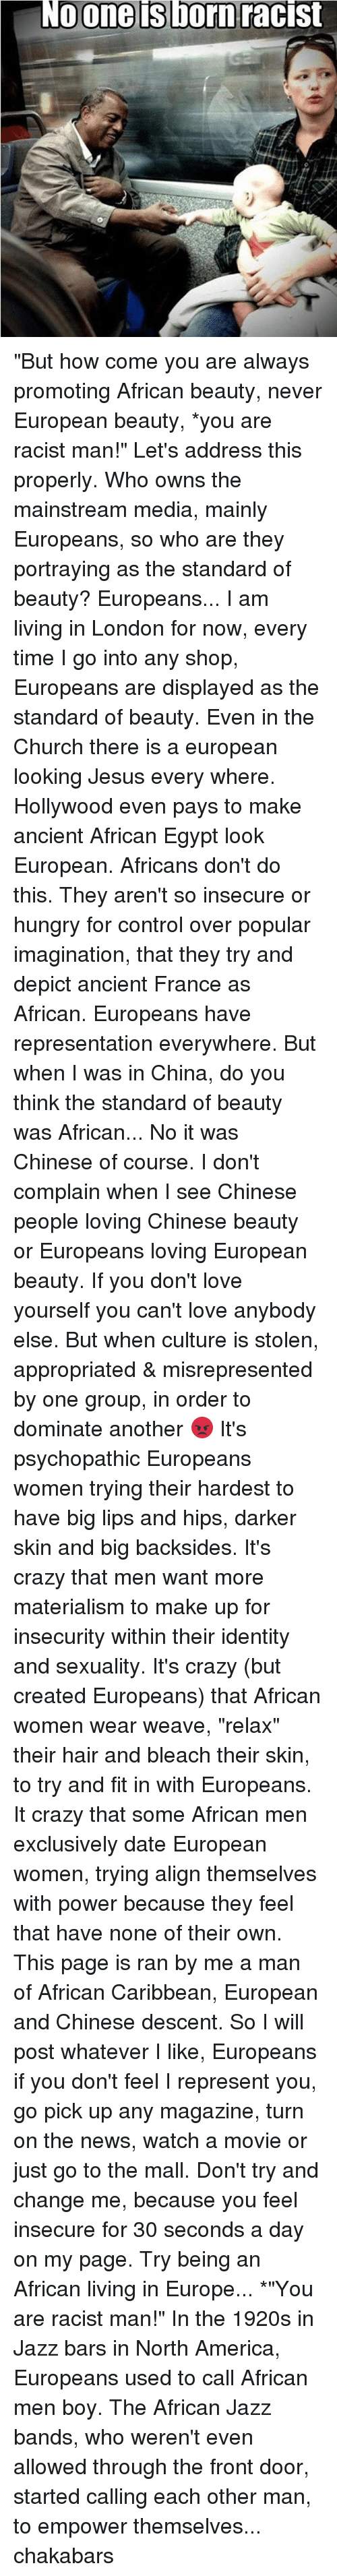 """Memes, Weave, and Chinese: No one is born racist """"But how come you are always promoting African beauty, never European beauty, *you are racist man!"""" Let's address this properly. Who owns the mainstream media, mainly Europeans, so who are they portraying as the standard of beauty? Europeans... I am living in London for now, every time I go into any shop, Europeans are displayed as the standard of beauty. Even in the Church there is a european looking Jesus every where. Hollywood even pays to make ancient African Egypt look European. Africans don't do this. They aren't so insecure or hungry for control over popular imagination, that they try and depict ancient France as African. Europeans have representation everywhere. But when I was in China, do you think the standard of beauty was African... No it was Chinese of course. I don't complain when I see Chinese people loving Chinese beauty or Europeans loving European beauty. If you don't love yourself you can't love anybody else. But when culture is stolen, appropriated & misrepresented by one group, in order to dominate another 😡 It's psychopathic Europeans women trying their hardest to have big lips and hips, darker skin and big backsides. It's crazy that men want more materialism to make up for insecurity within their identity and sexuality. It's crazy (but created Europeans) that African women wear weave, """"relax"""" their hair and bleach their skin, to try and fit in with Europeans. It crazy that some African men exclusively date European women, trying align themselves with power because they feel that have none of their own. This page is ran by me a man of African Caribbean, European and Chinese descent. So I will post whatever I like, Europeans if you don't feel I represent you, go pick up any magazine, turn on the news, watch a movie or just go to the mall. Don't try and change me, because you feel insecure for 30 seconds a day on my page. Try being an African living in Europe... *""""You are racist man!"""" In the 1920s """